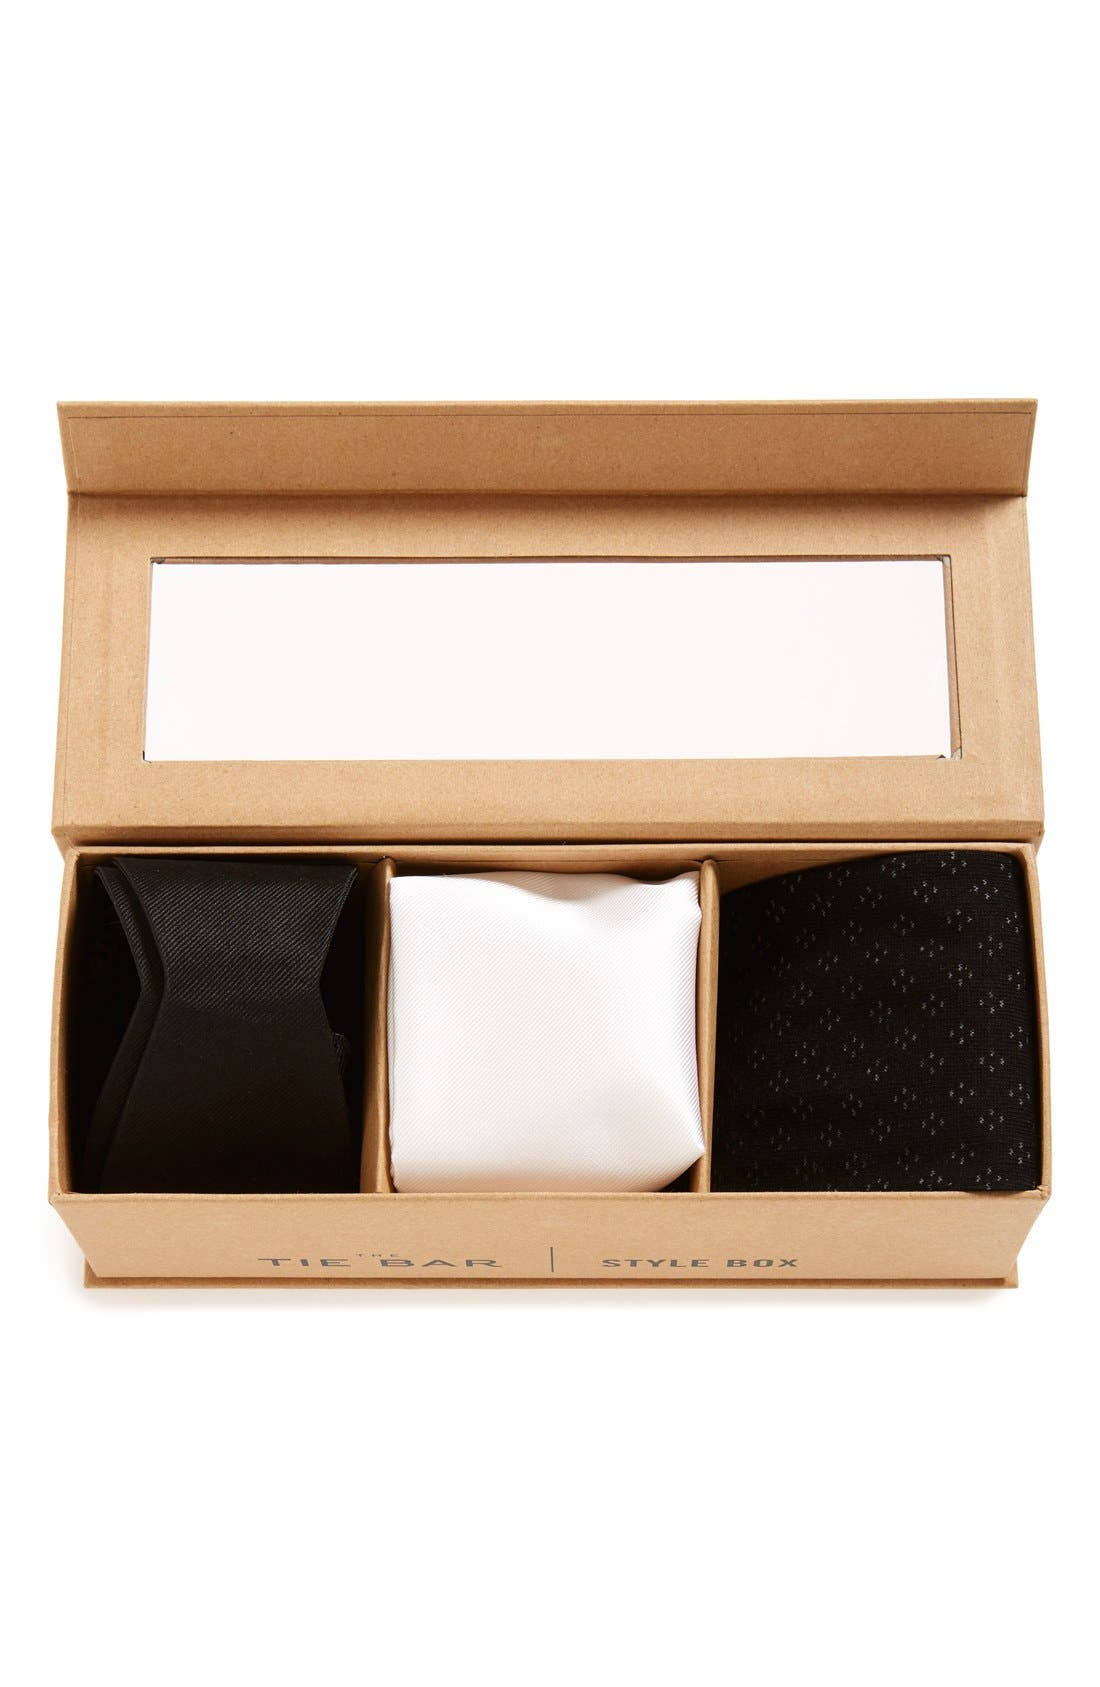 Alternate Image 3  - The Tie Bar Small Style Box (Nordstrom Exclusive)